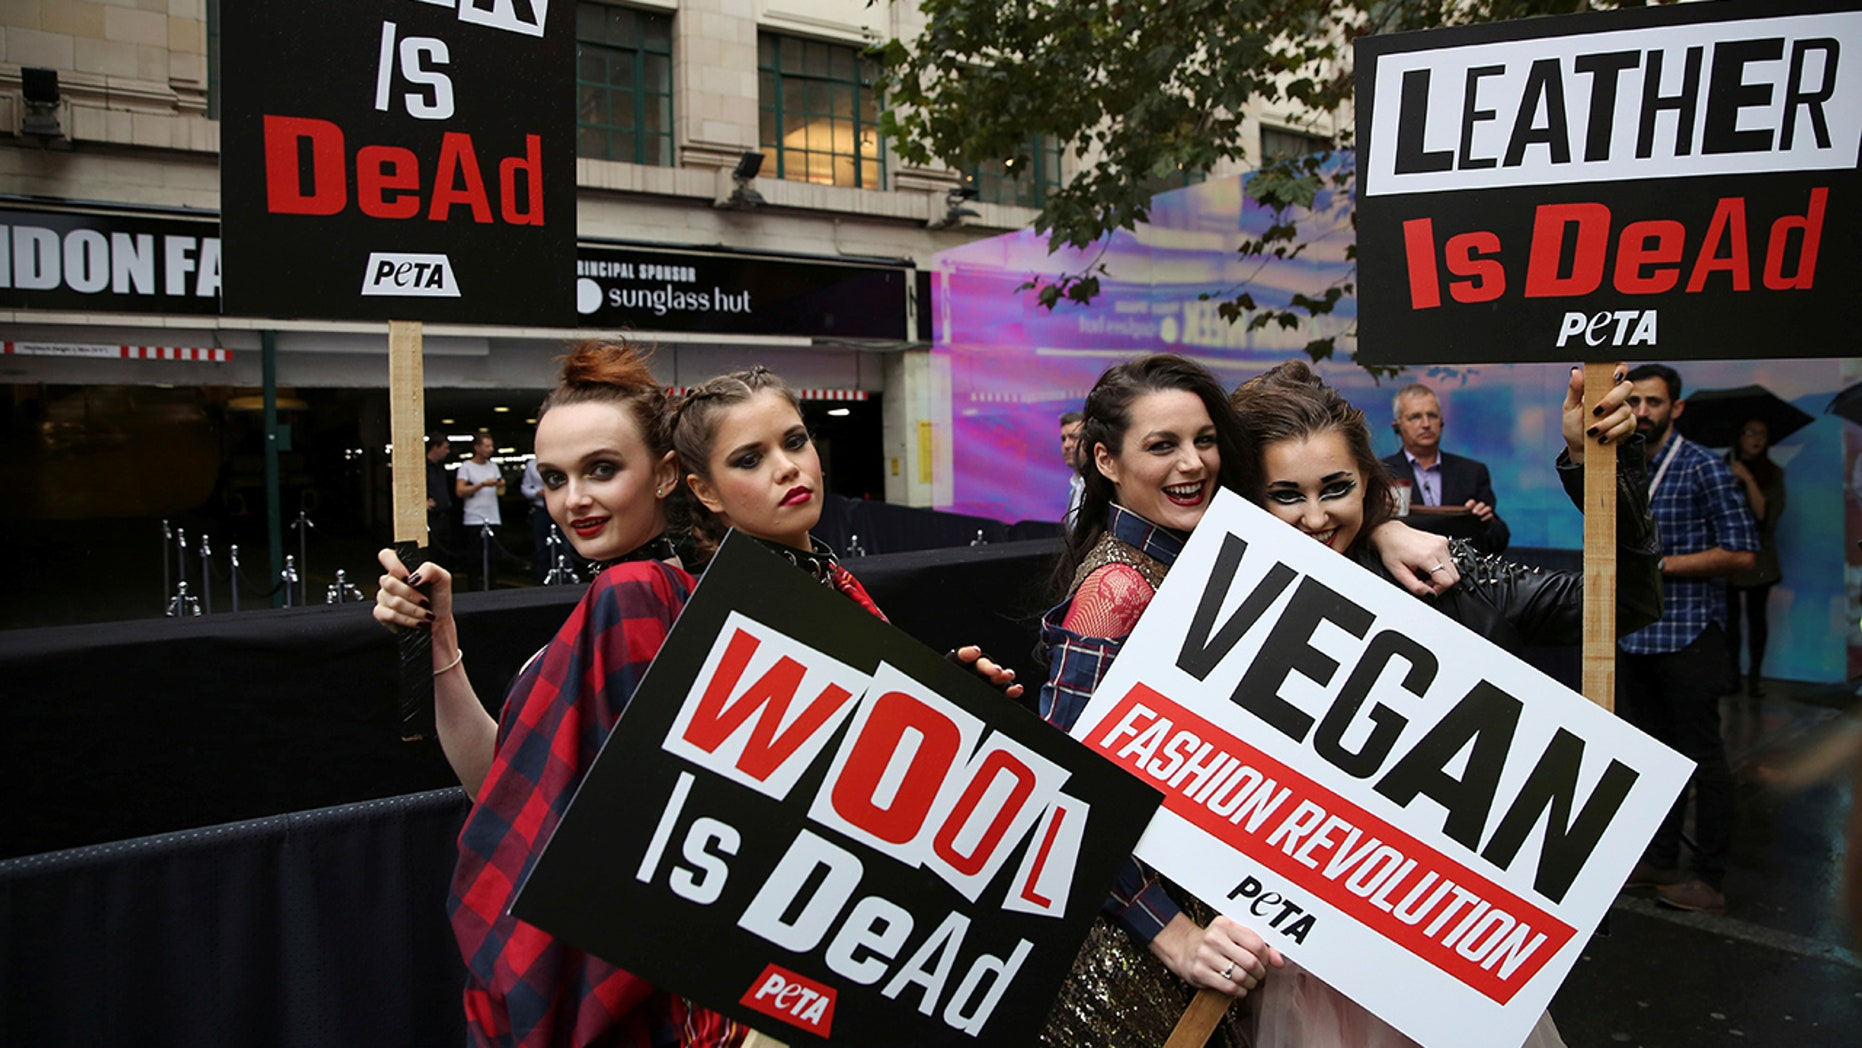 PETA defends their sign that was deemed too graphic to run on the side of London buses.